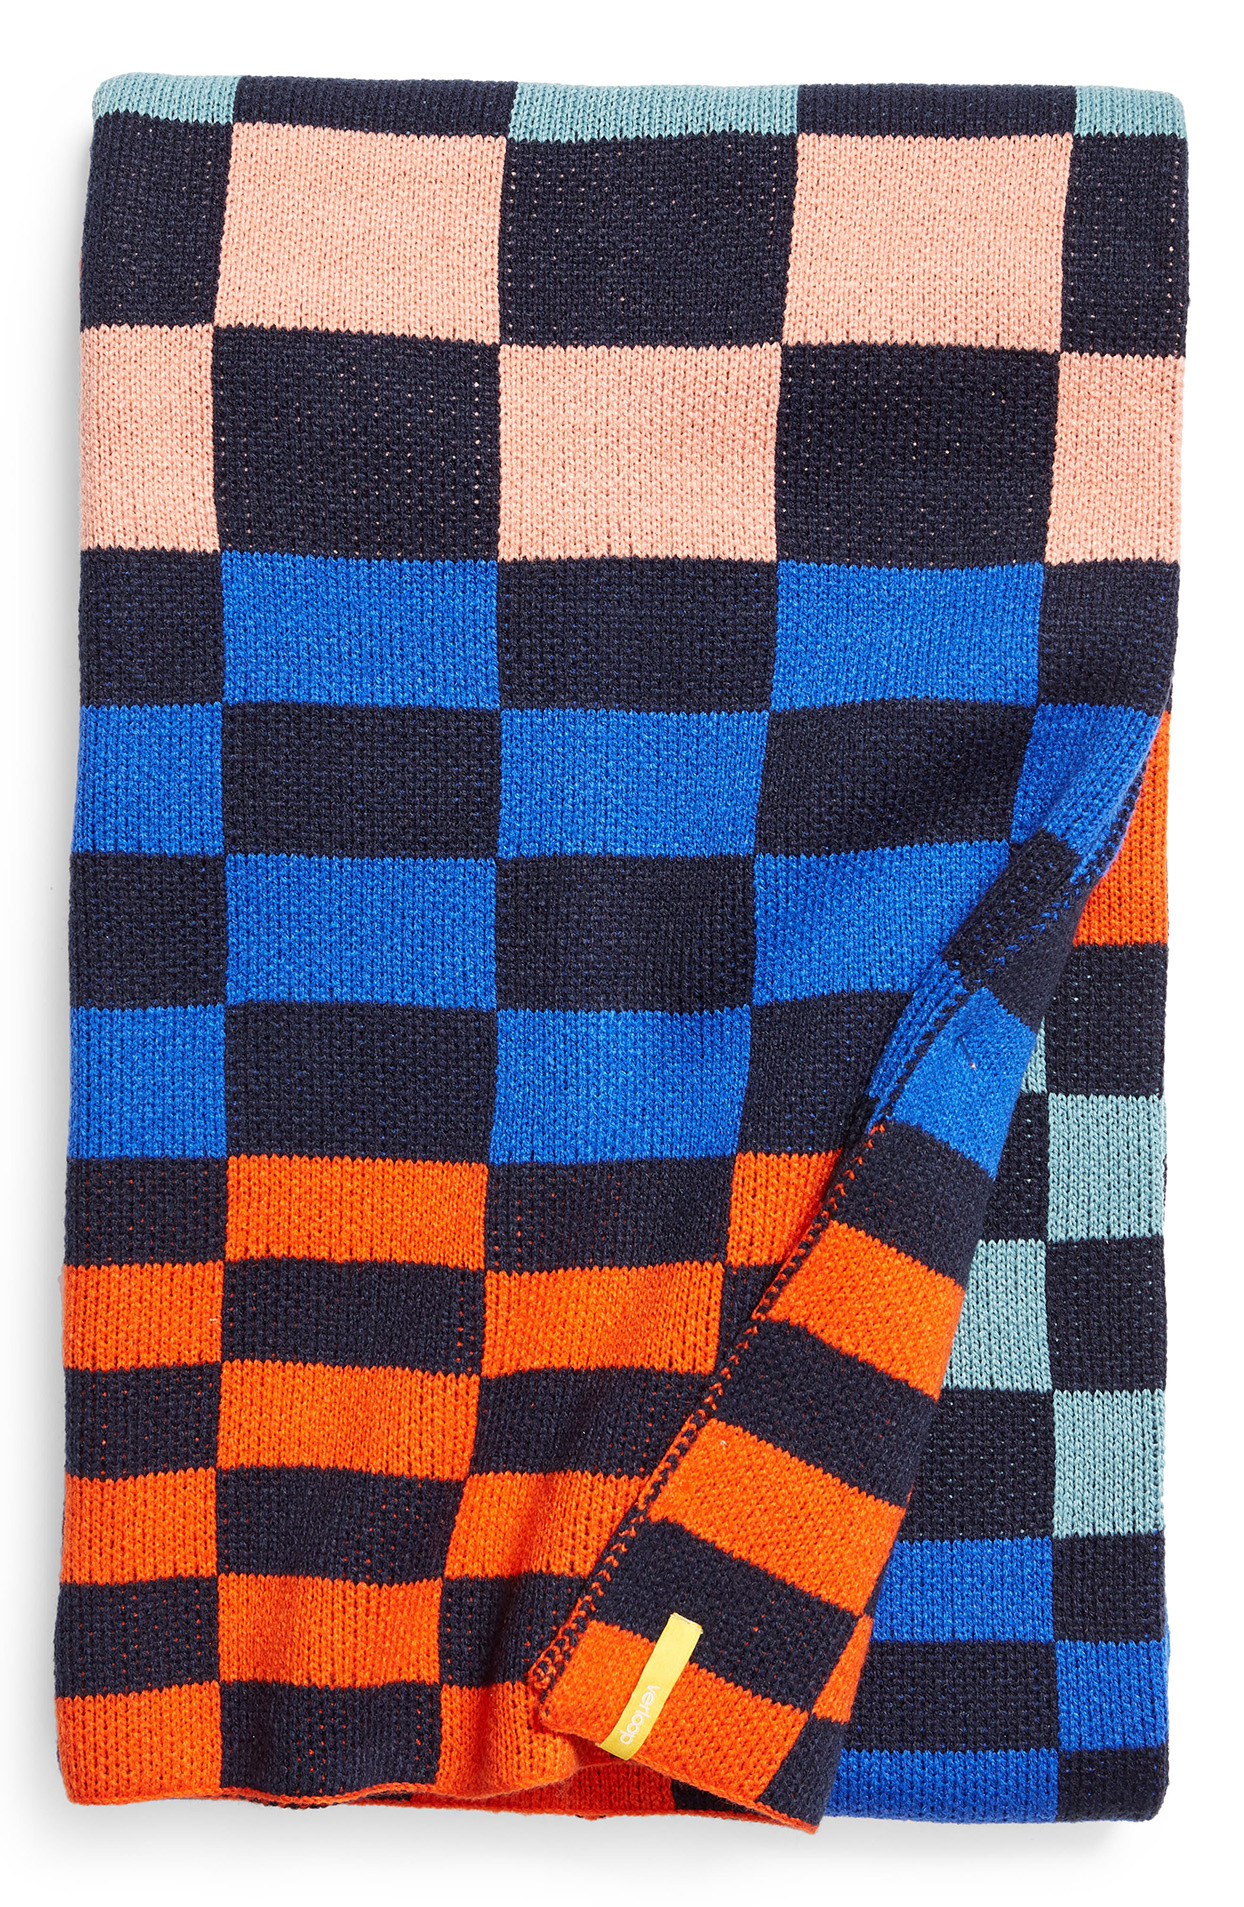 multicolored checkered knit throw blanket